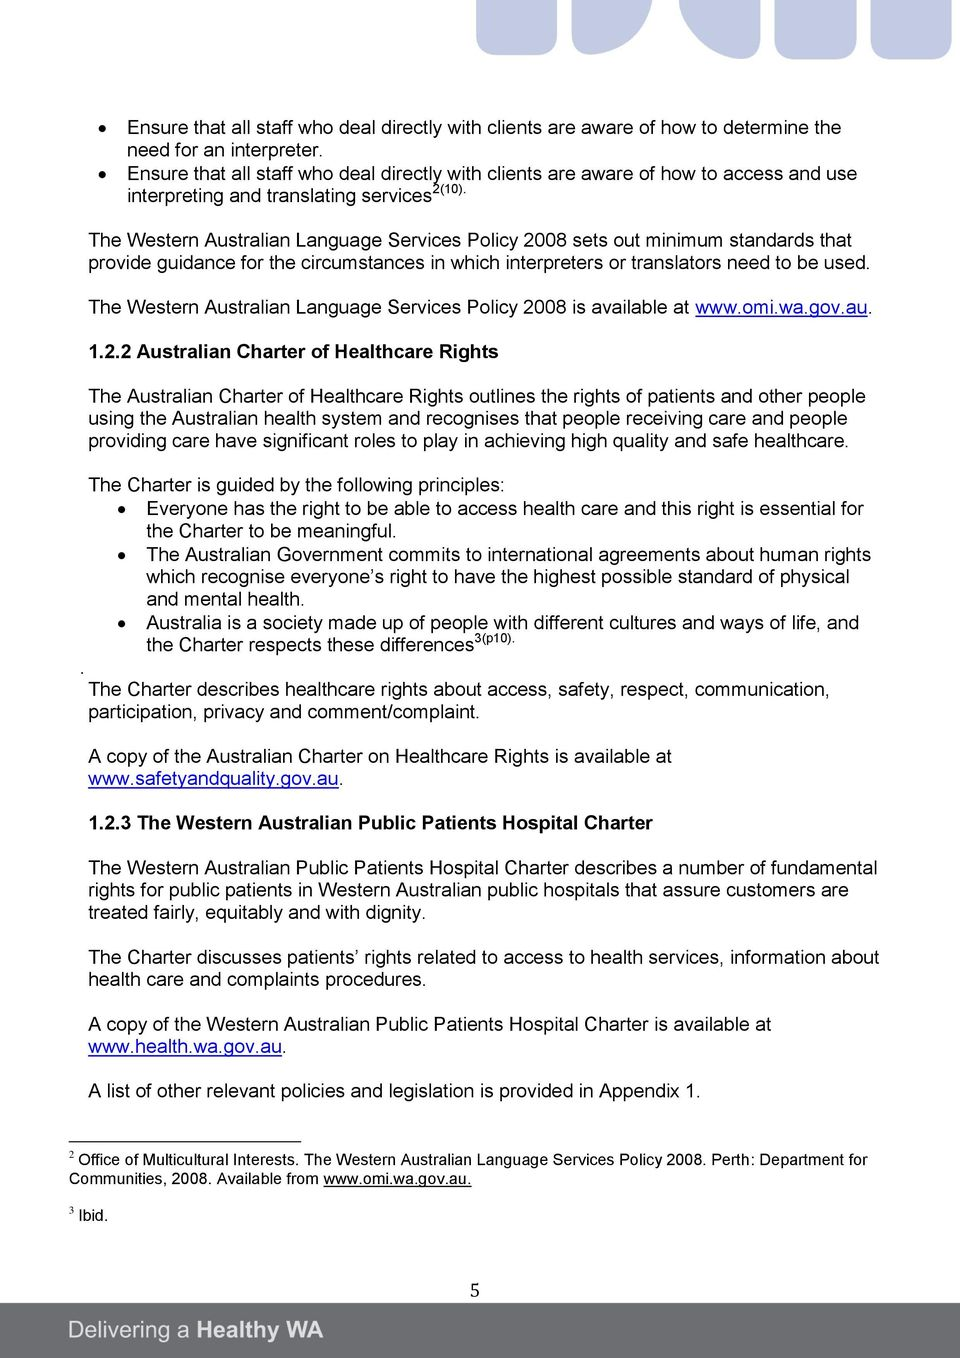 The Western Australian Language Services Policy 2008 sets out minimum standards that provide guidance for the circumstances in which interpreters or translators need to be used.